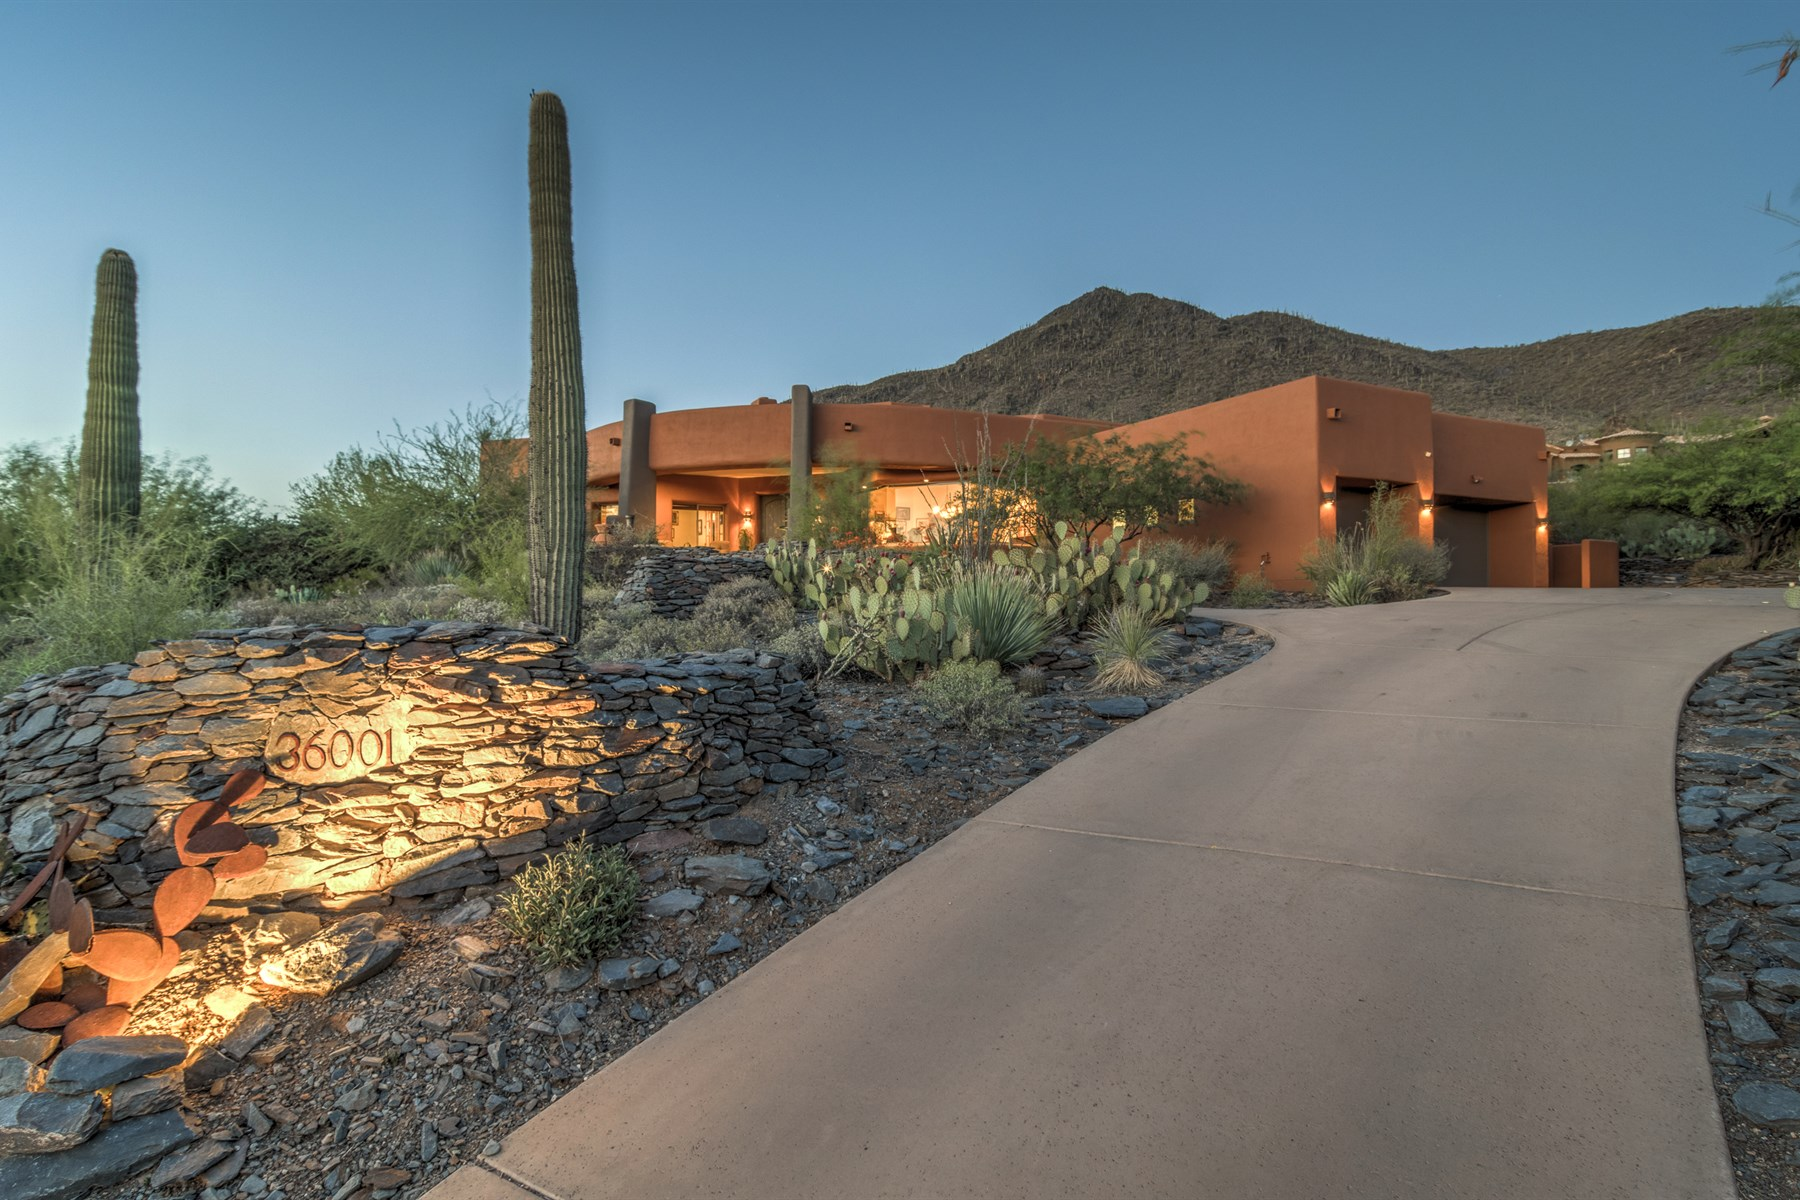 Moradia para Venda às Architectural masterpiece and the natural desert surroundings 36001 N 60TH ST Cave Creek, Arizona 85331 Estados Unidos